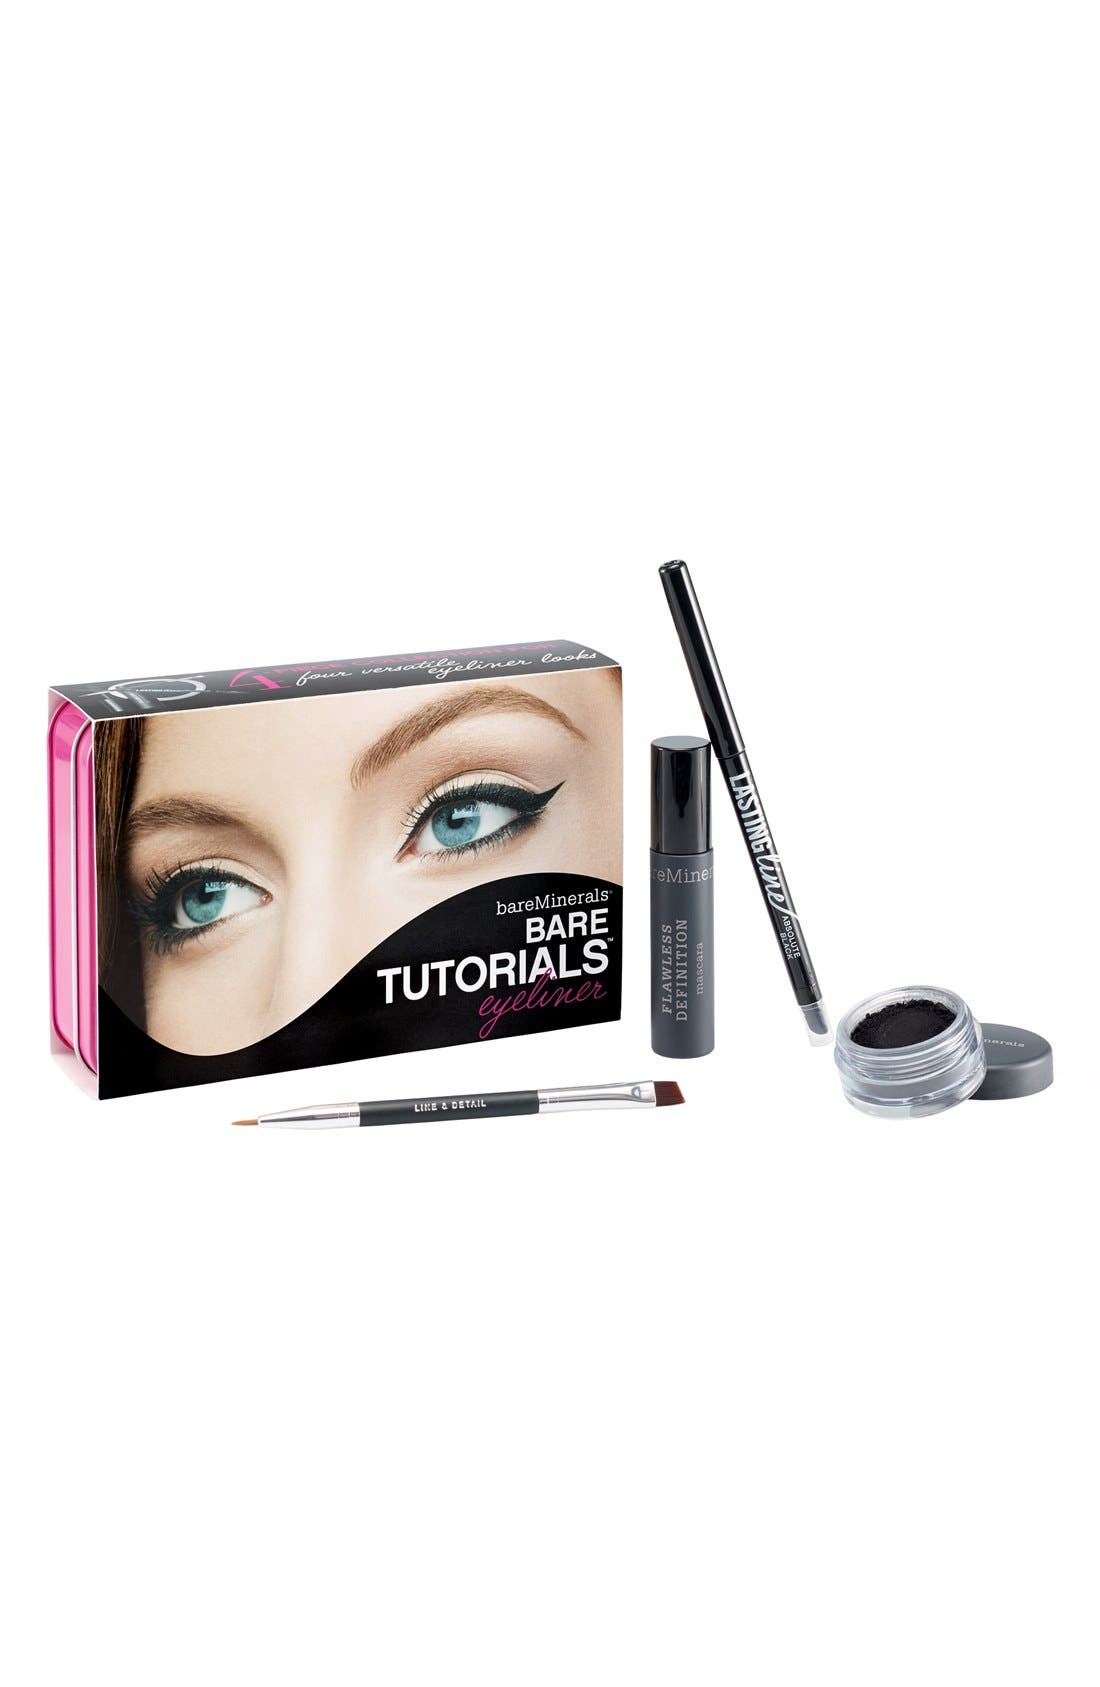 bareMinerals® Bare Tutorials Eyeliner Set ($56 Value)